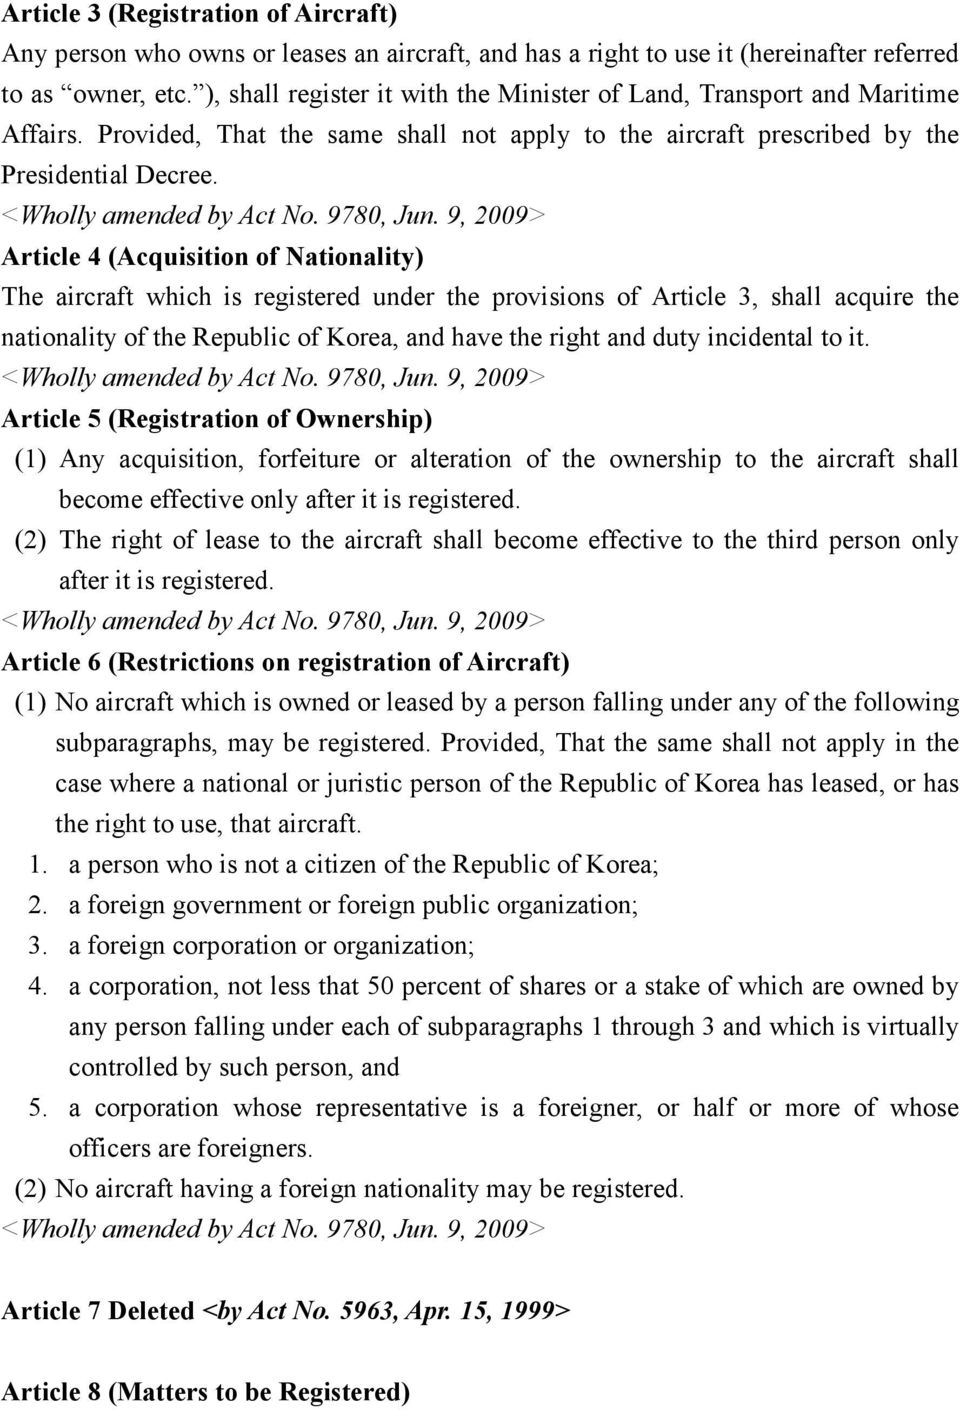 Article 4 (Acquisition of Nationality) The aircraft which is registered under the provisions of Article 3, shall acquire the nationality of the Republic of Korea, and have the right and duty